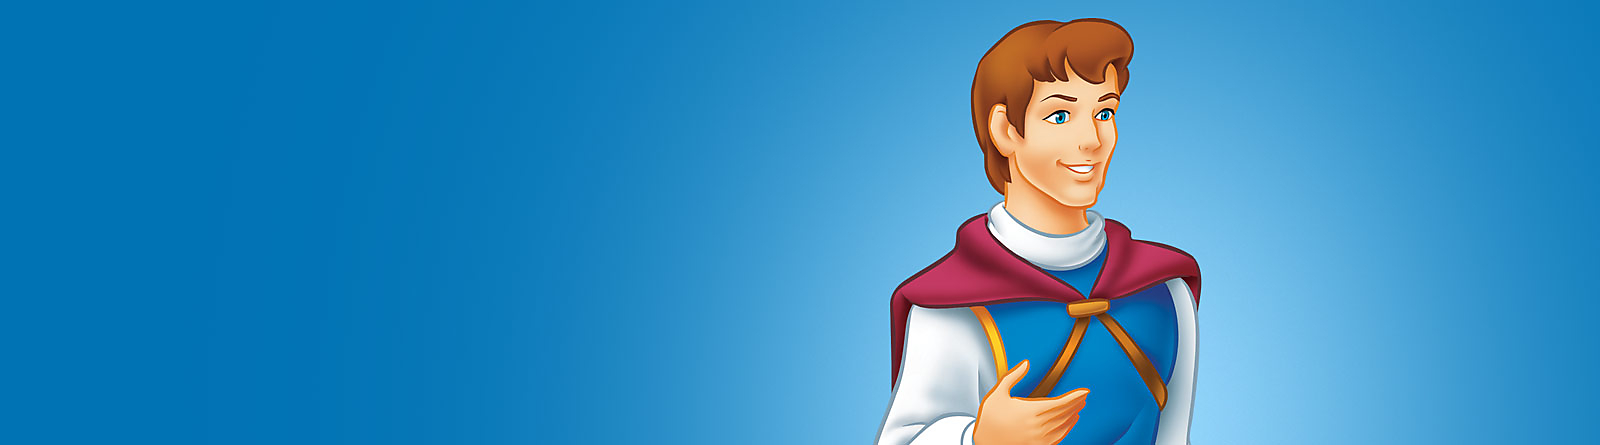 Background image of Prince (Snow White)